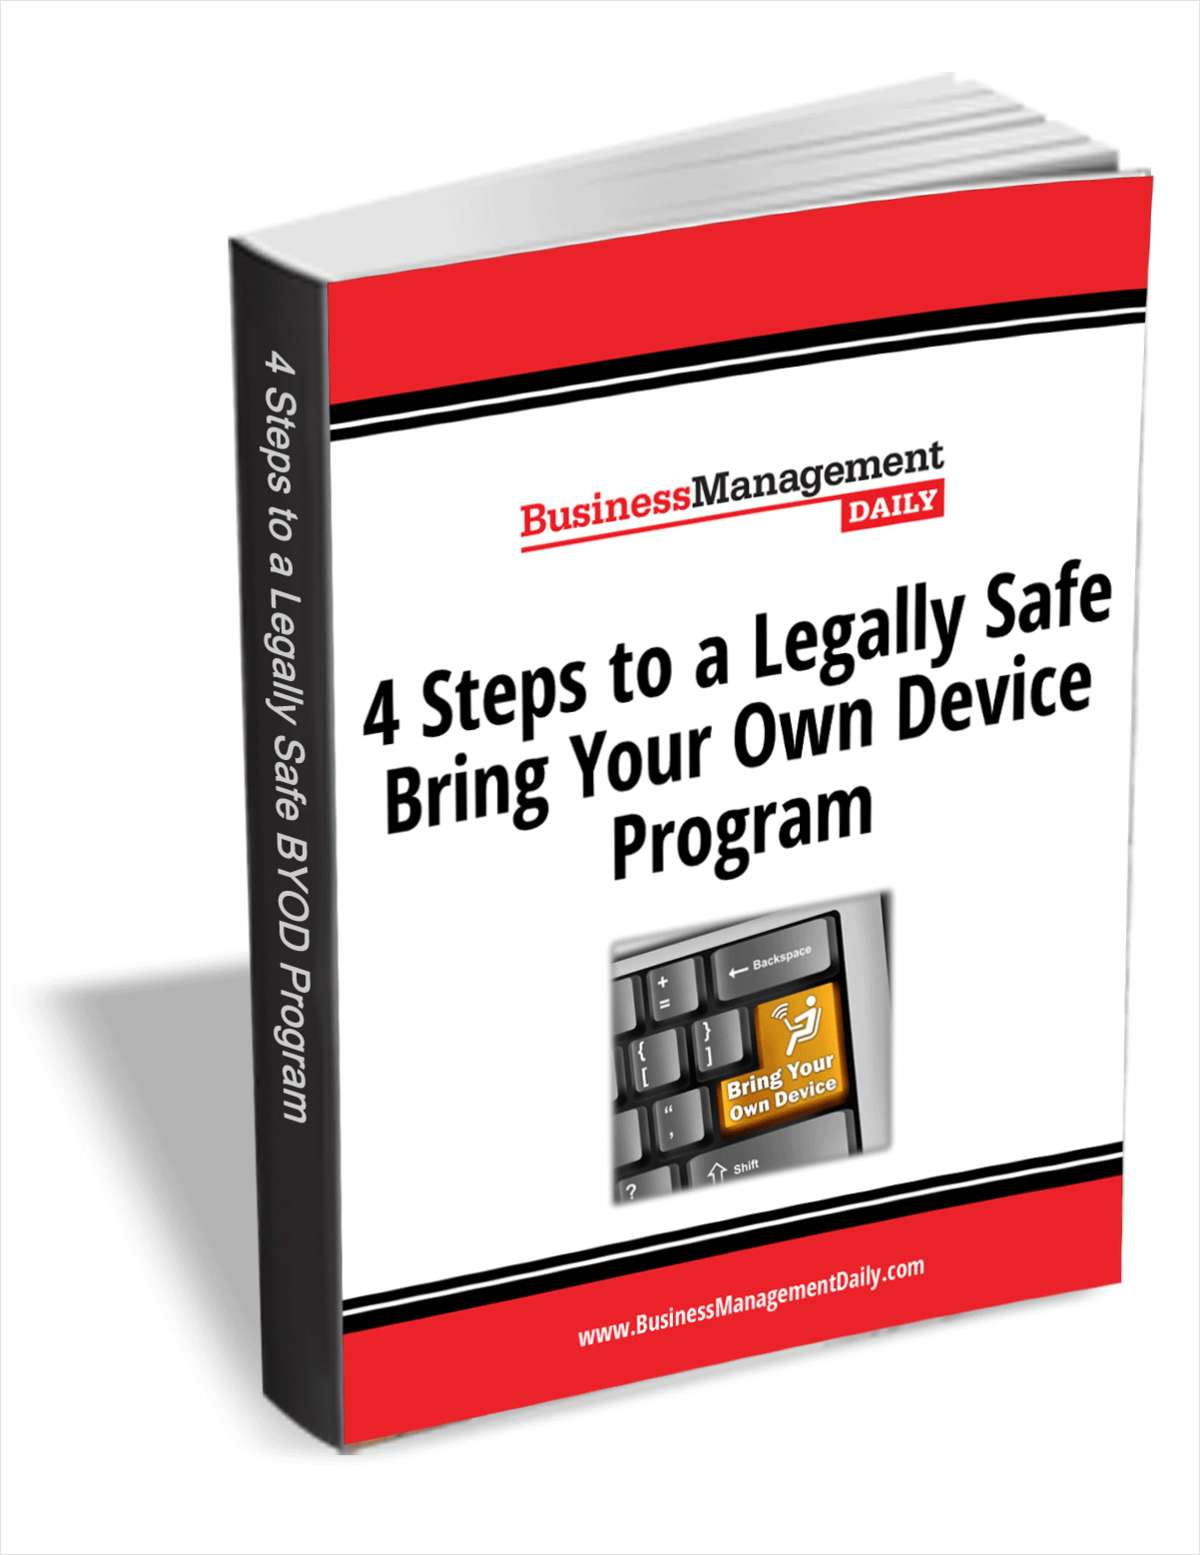 4 Steps to a Legally Safe Bring Your Own Device Program